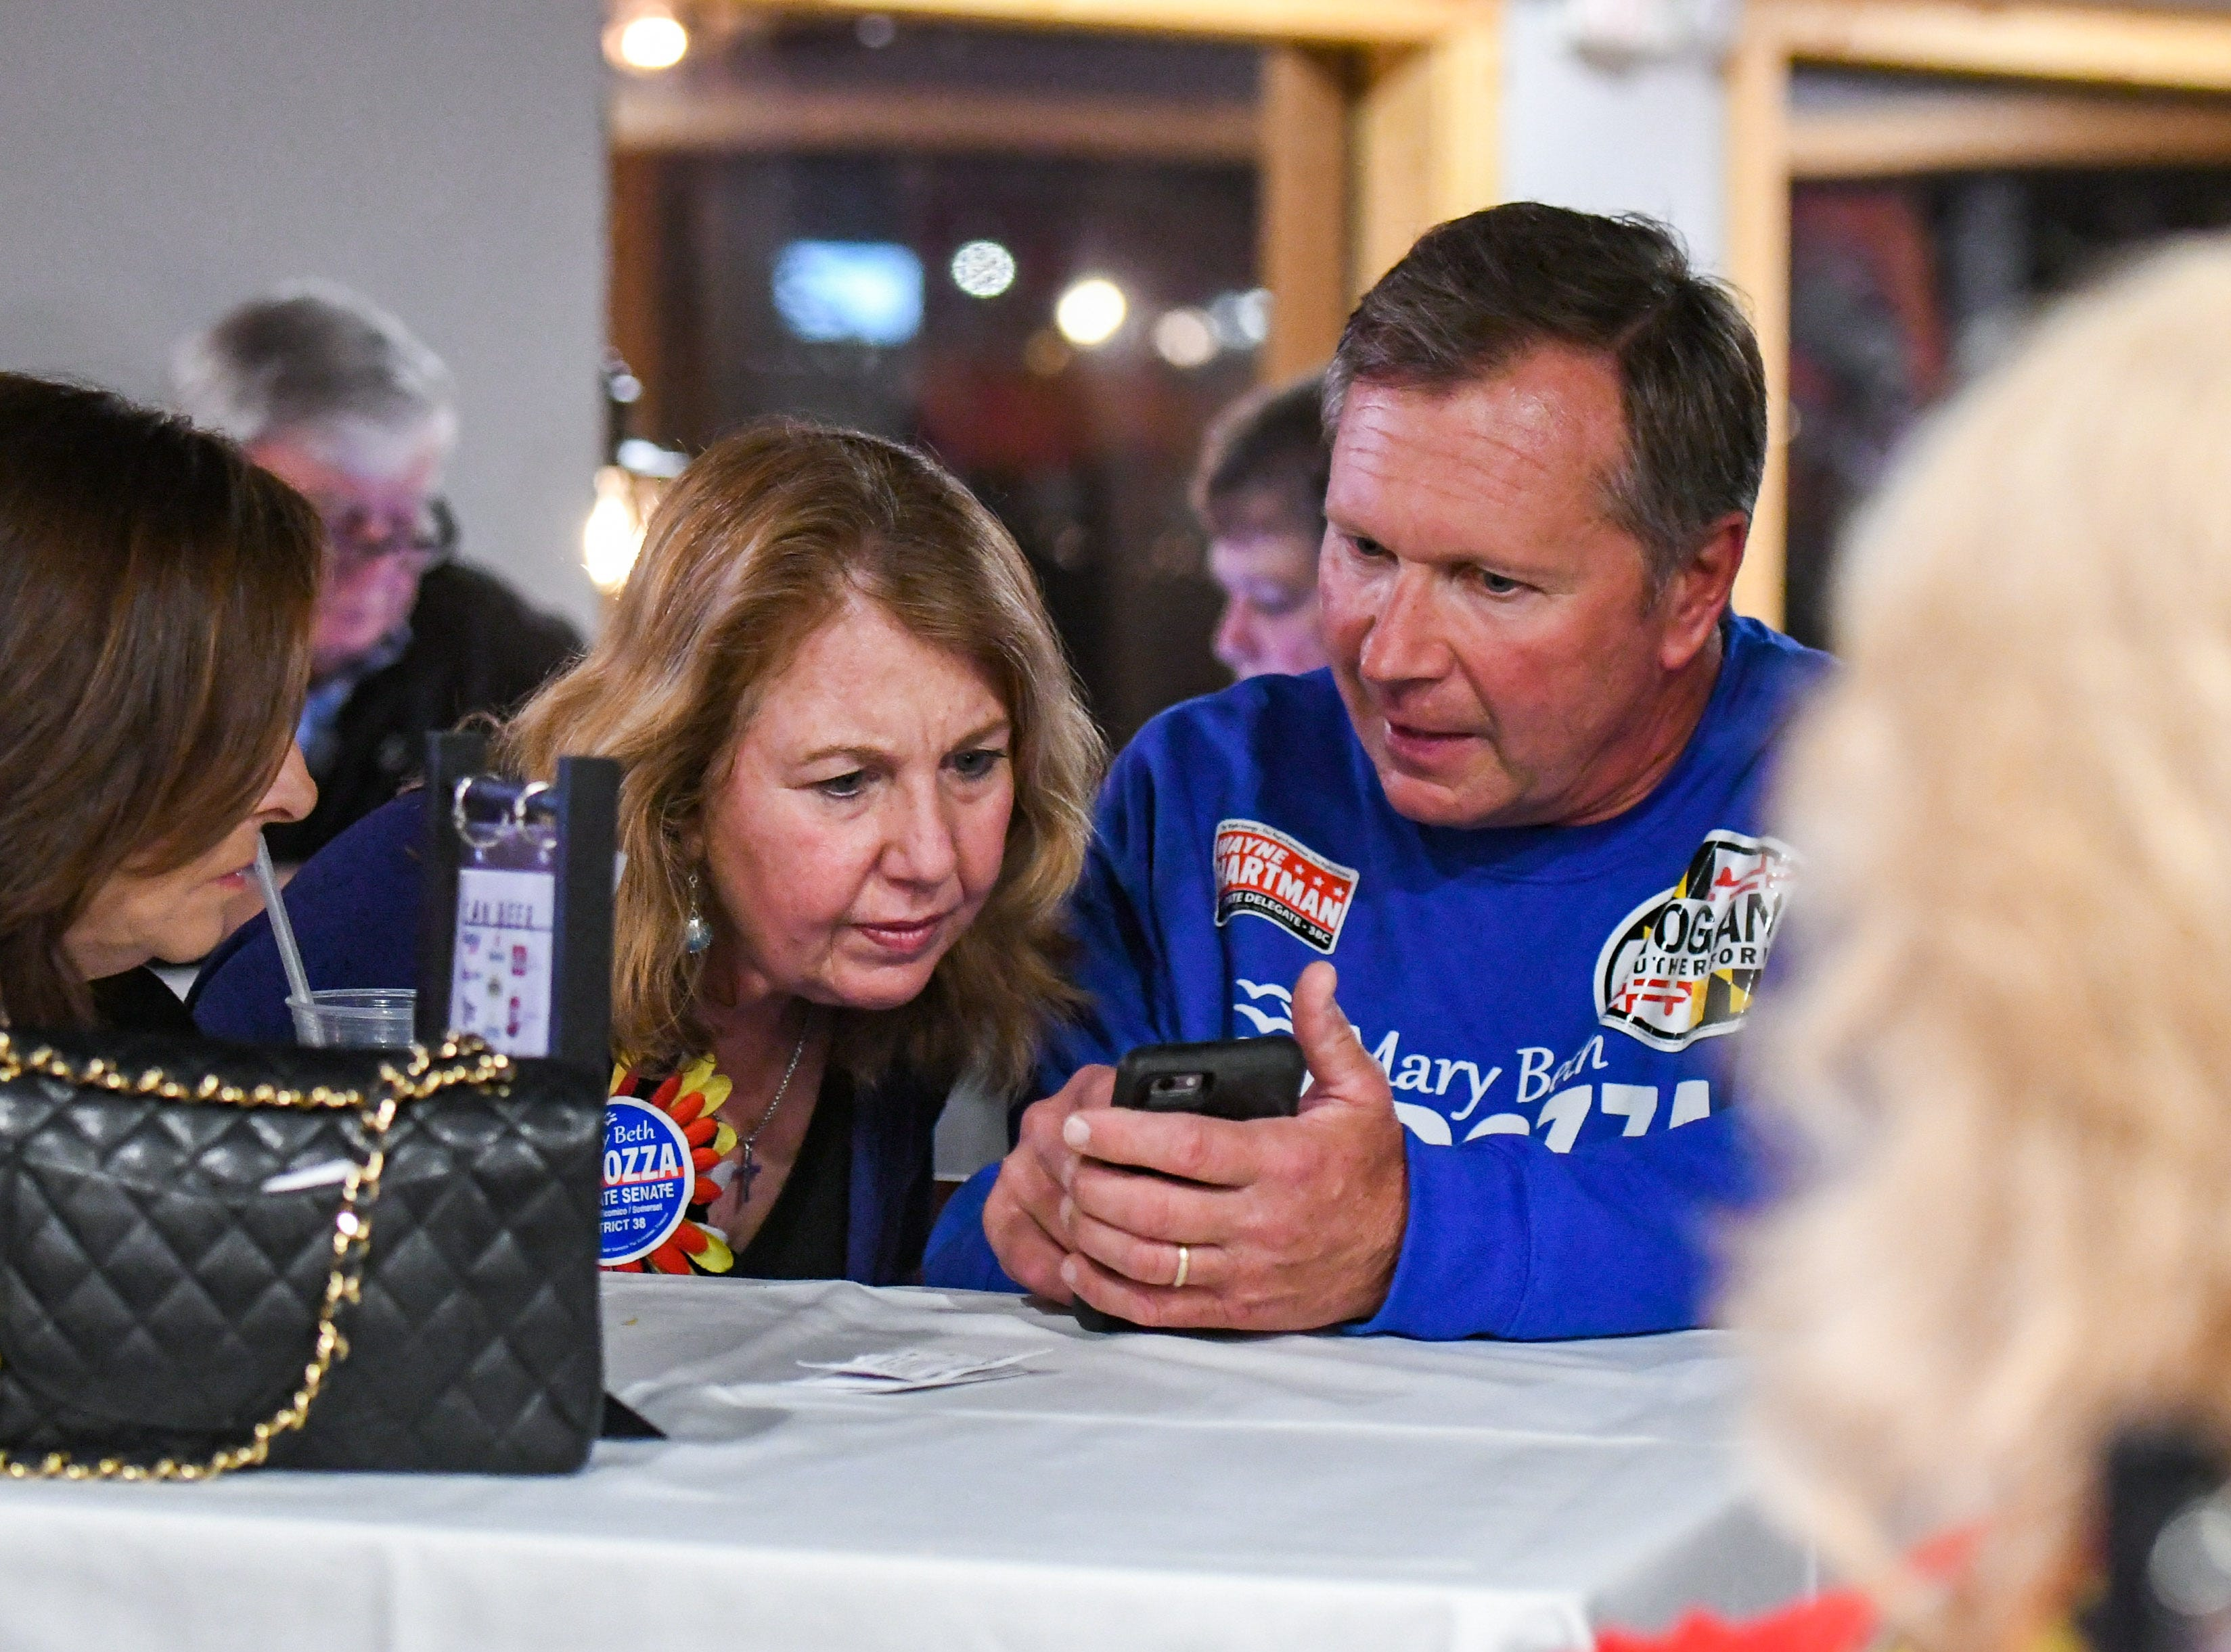 Mary Beth Carozza checks results at her Ocean City watch party on Tuesday, Nov 6, 2018. Excitement grew throughout the night as Carozza was elected the new Maryland state senator in District 38, unseating incumbent Democrat Jim Mathias.